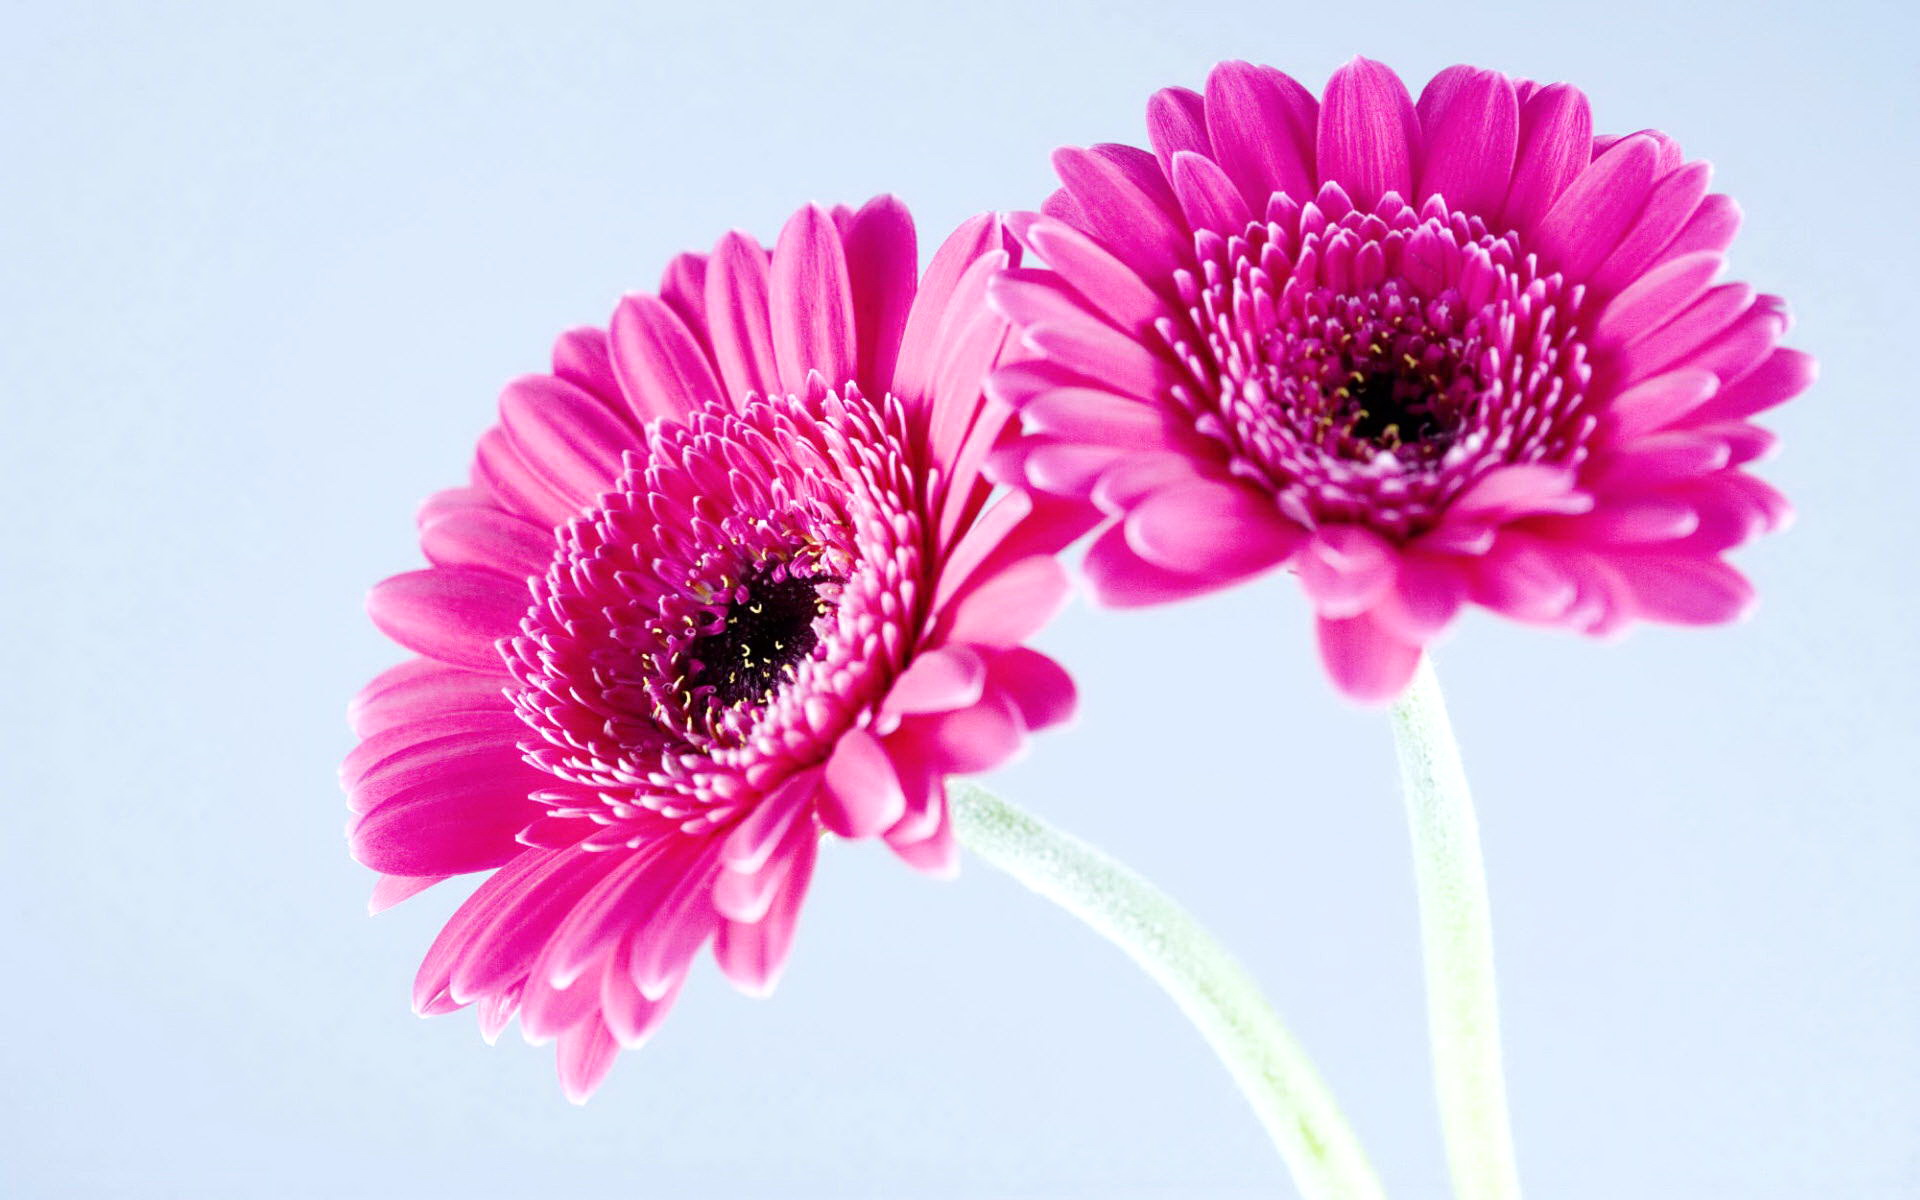 Flowers » Blog Archive » Awesome Pink Daisy Flowers Wallpaper Wallpaper